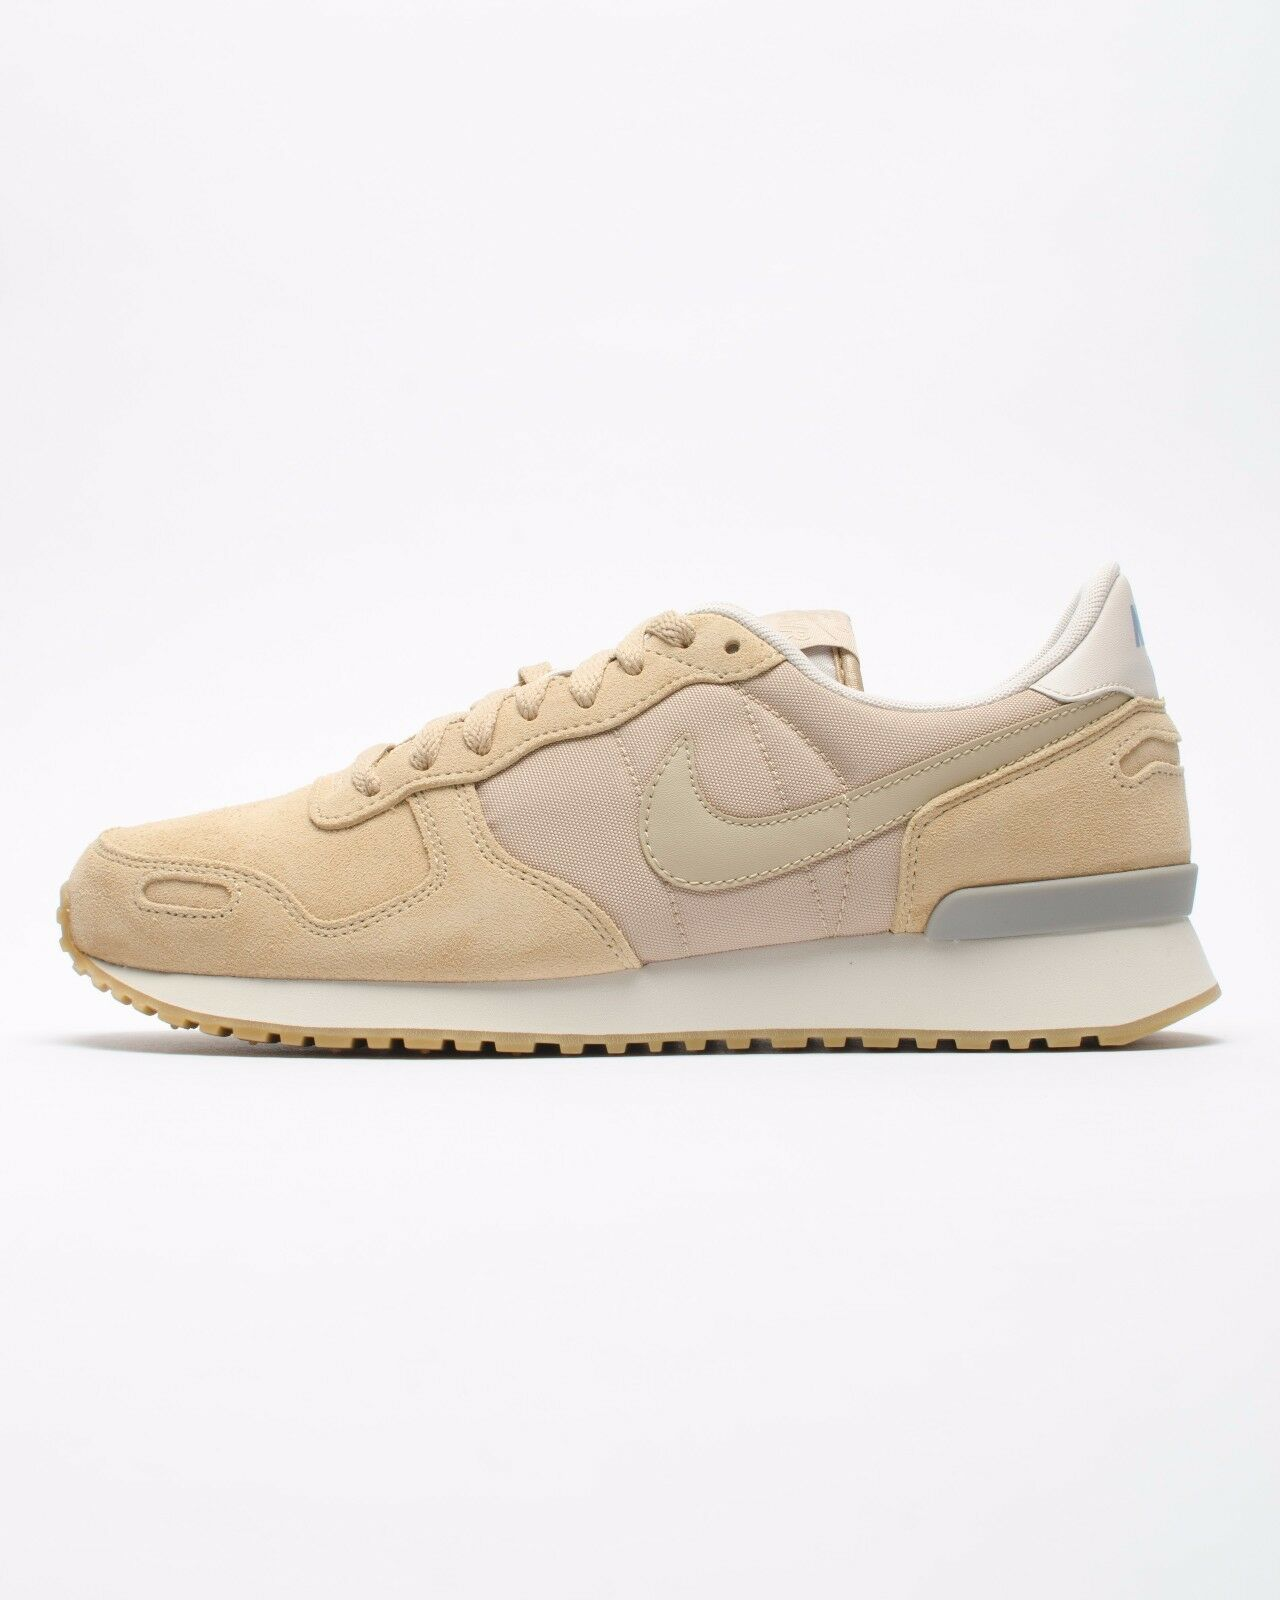 Nike Air Vortex Mushroom Tan White size 12.5. 918206-200. internationalist max